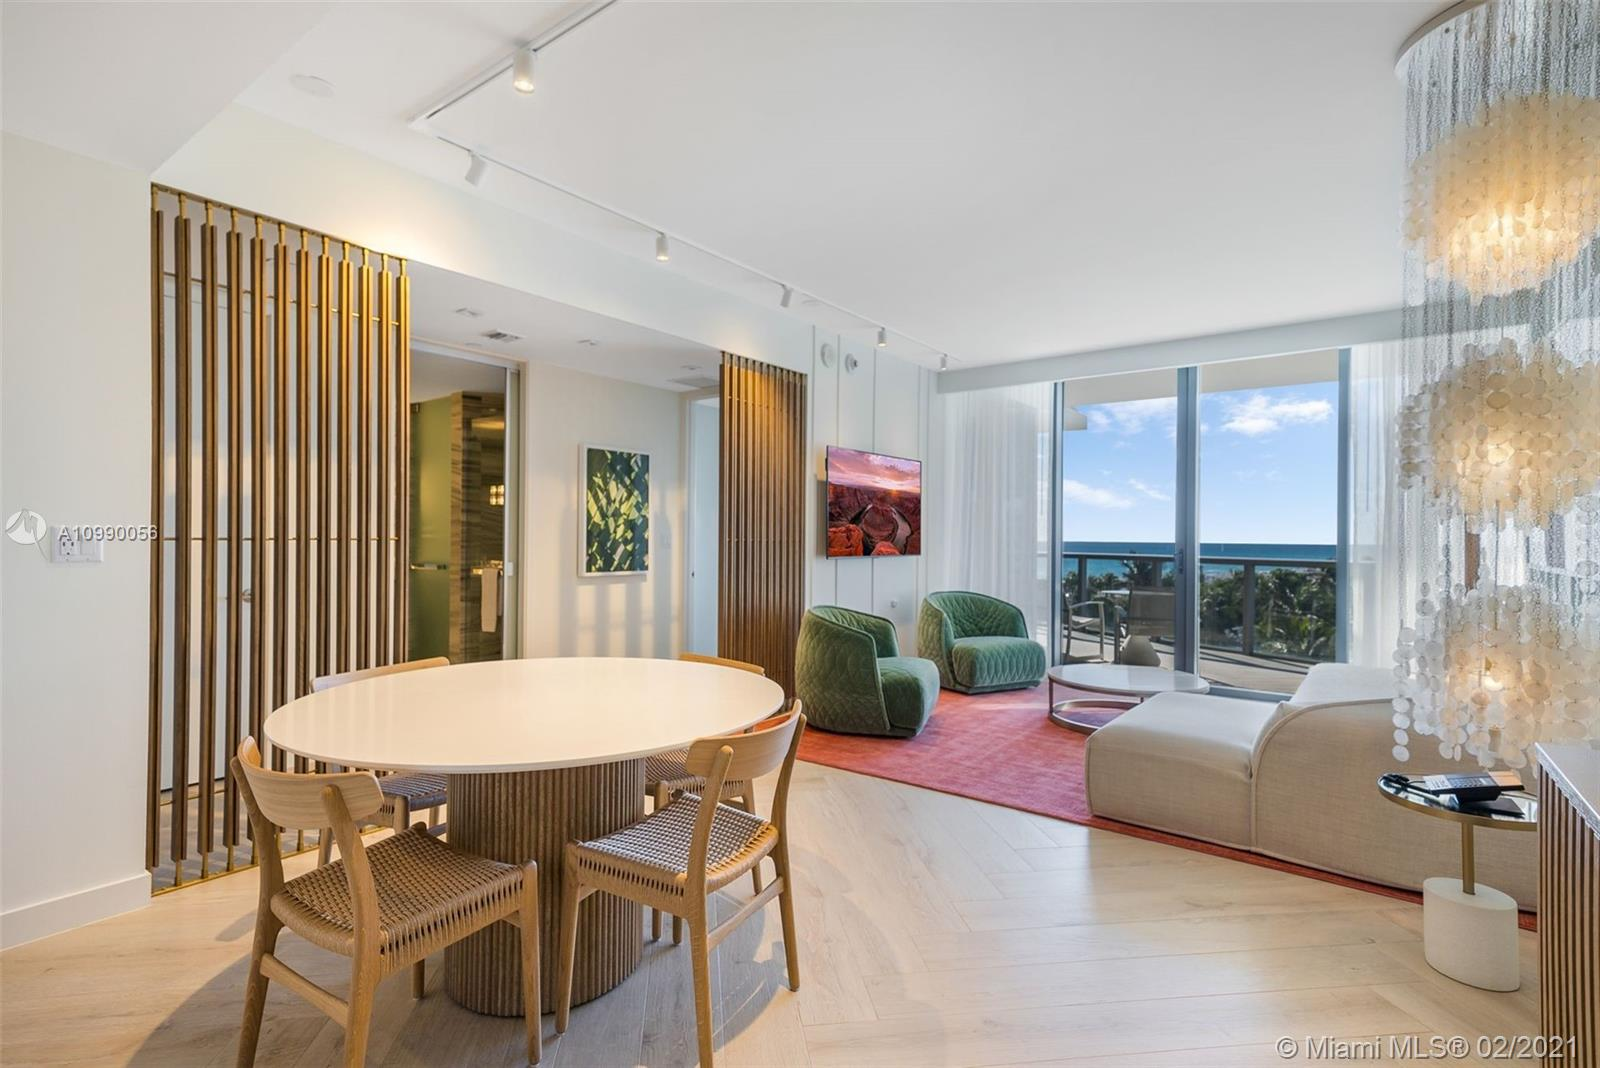 W South Beach #612-614 - 2201 Collins Ave #612-614, Miami Beach, FL 33139